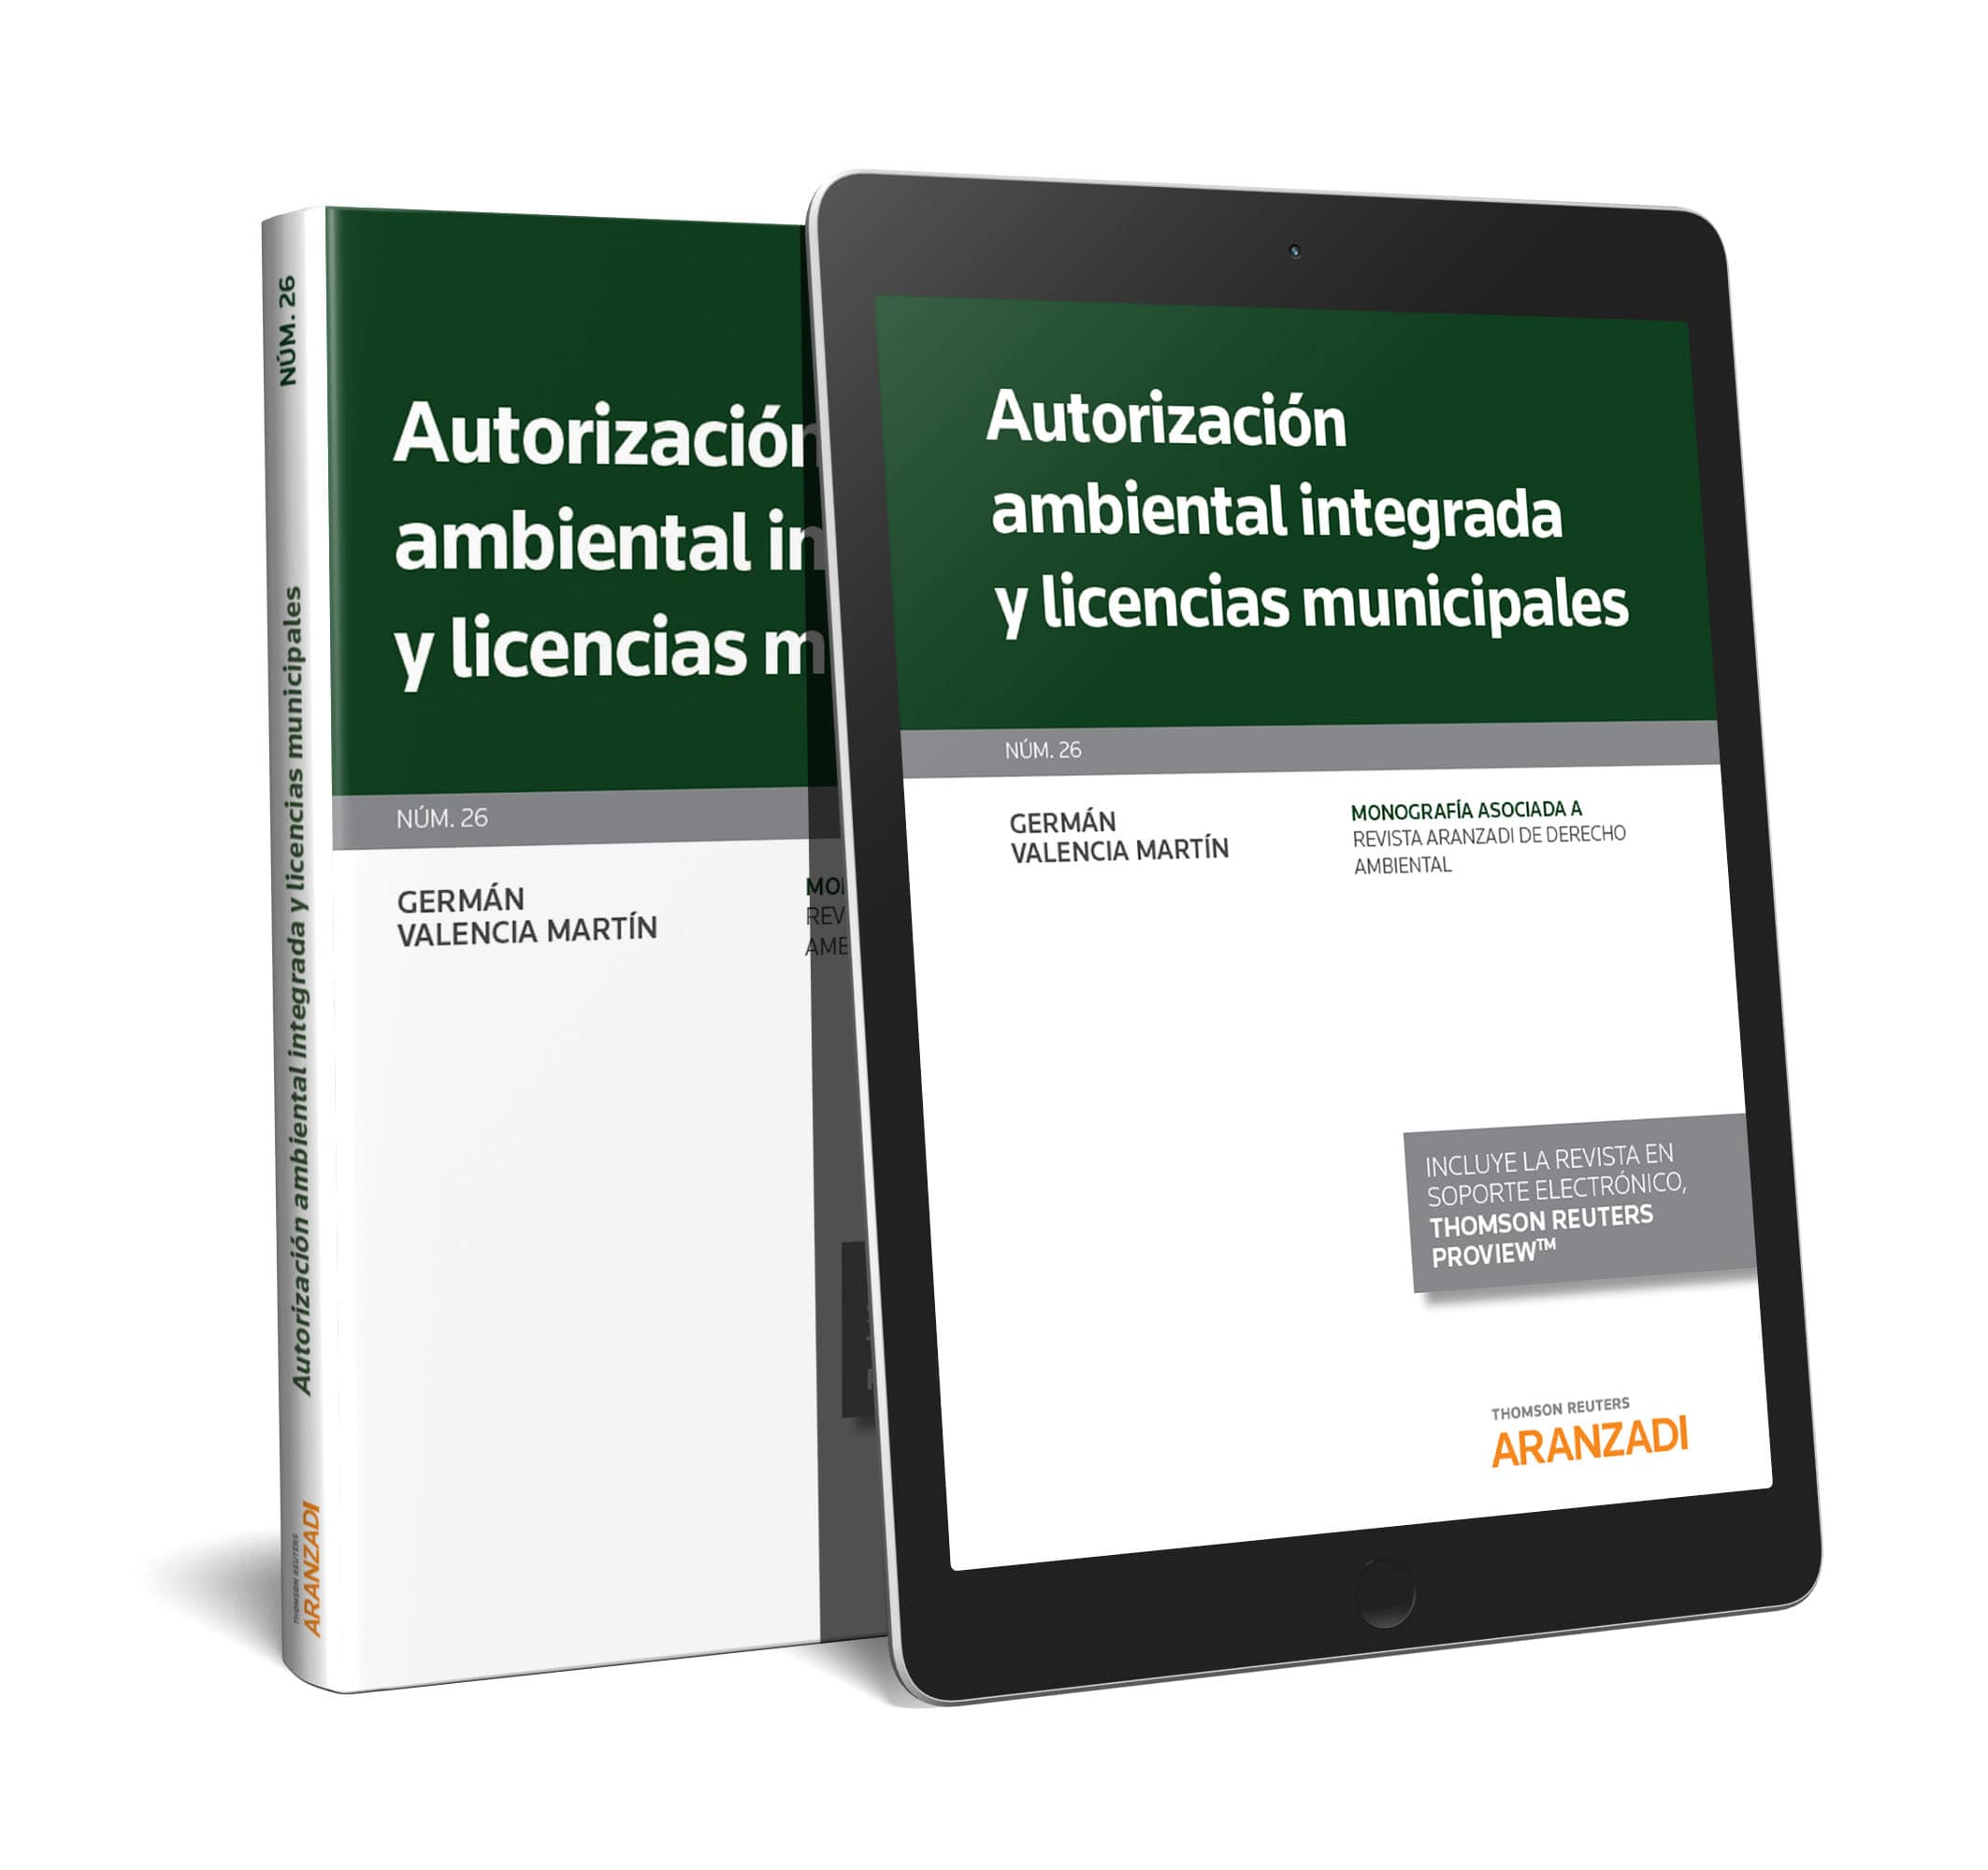 AUTORIZACION AMBIENTAL INTEGRADA Y LICENCIAS MUNICIPALES